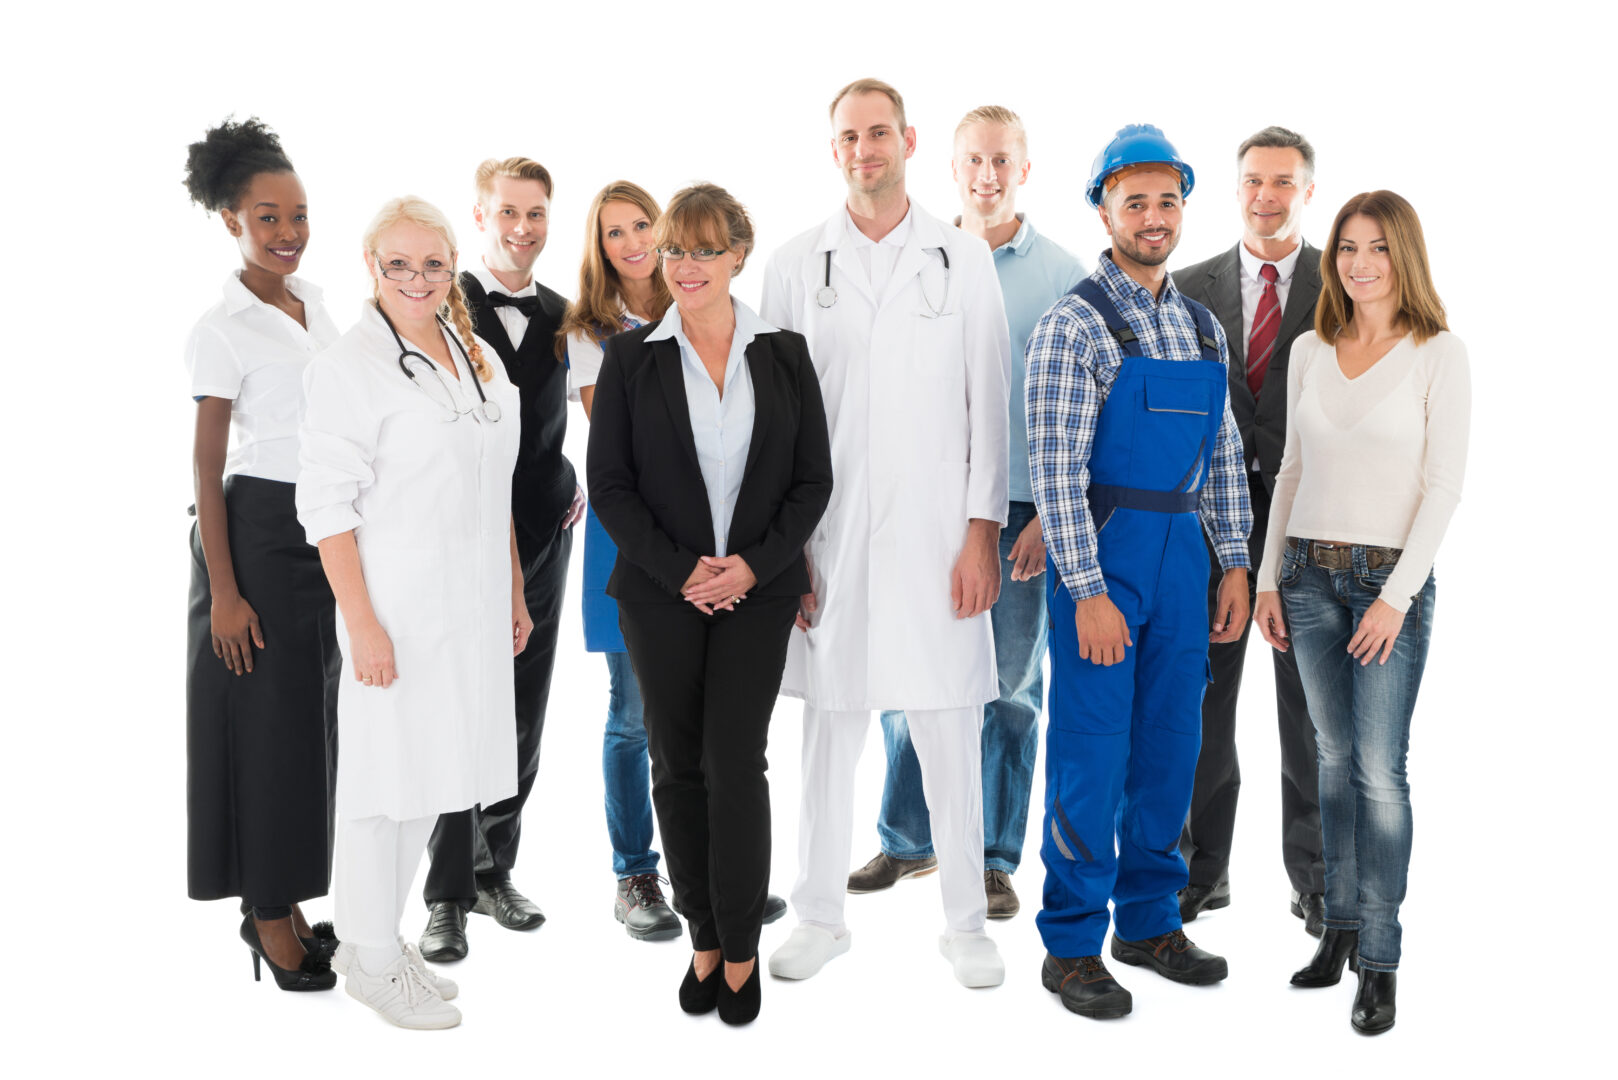 Group portrait of confident people with various occupations standing against white background